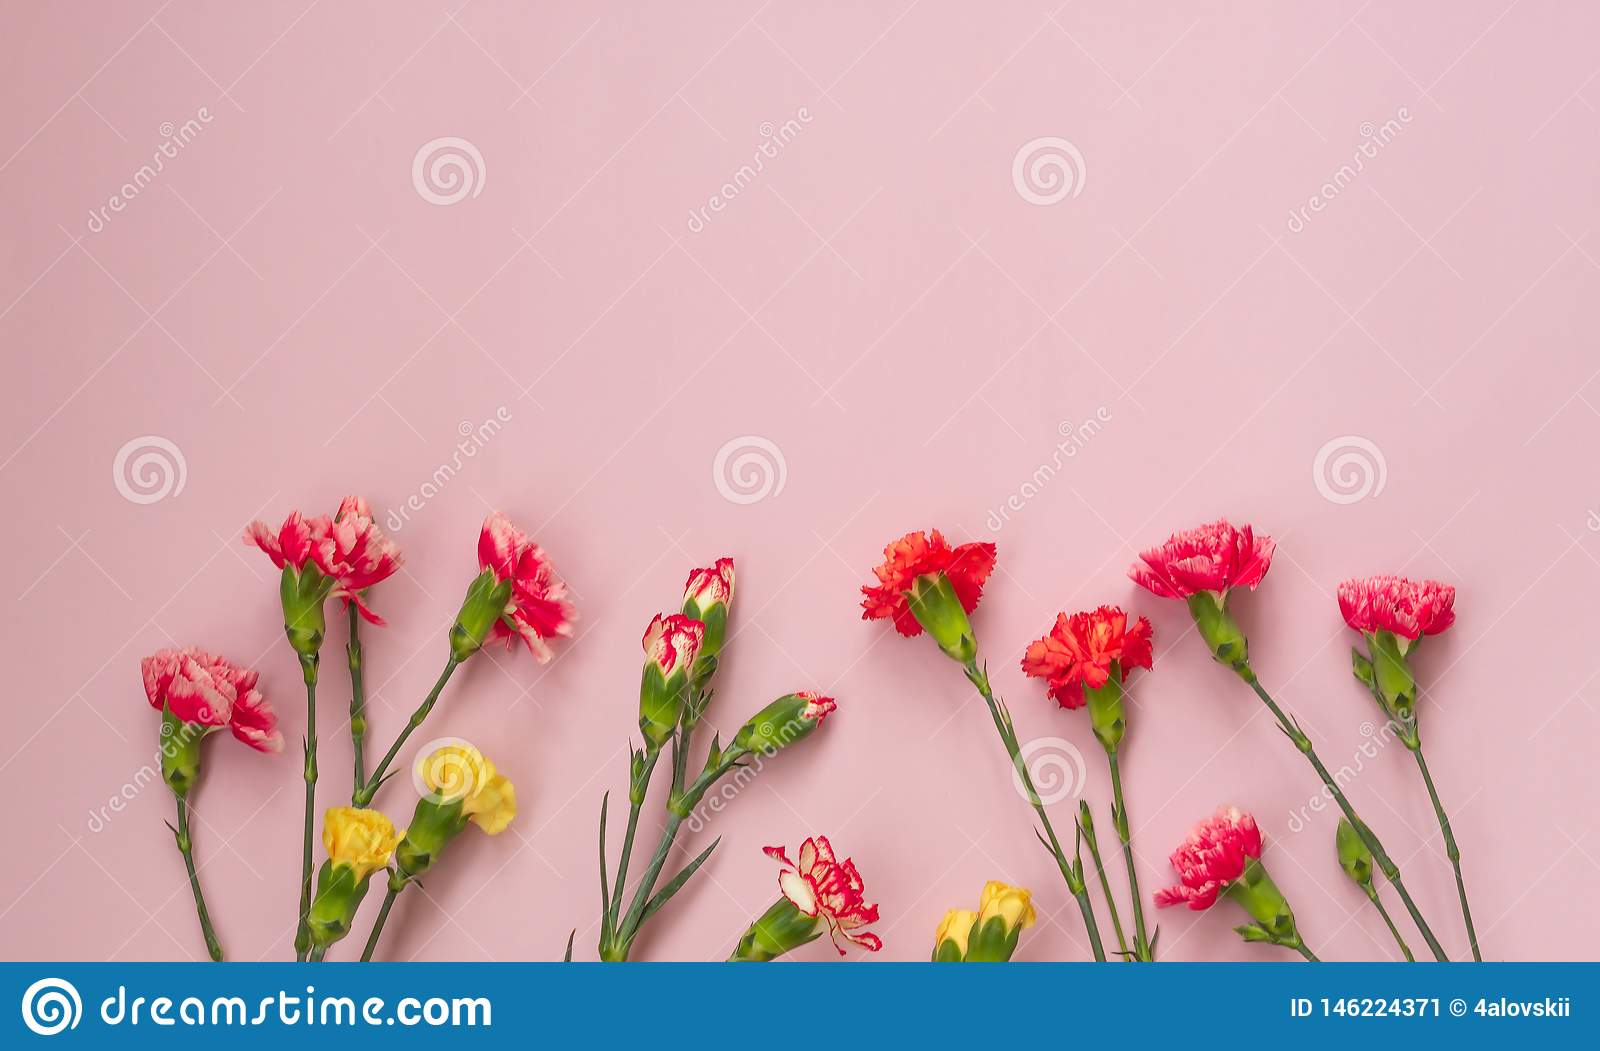 Pink background with carnations flowers and copy space. Top view